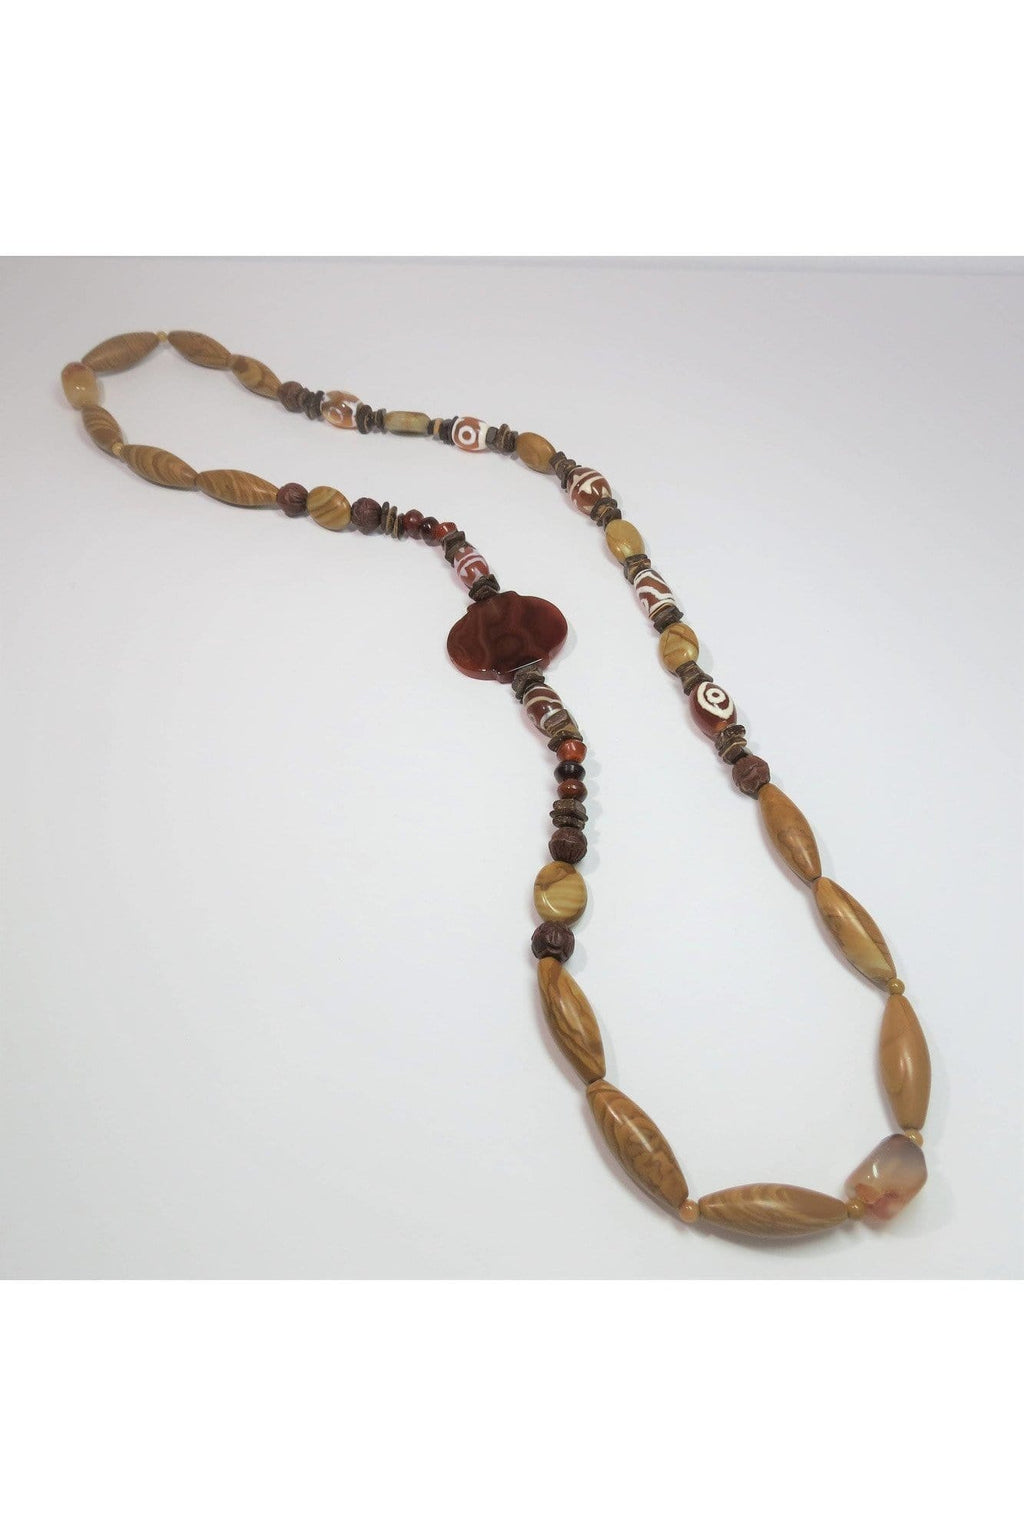 Woodstone, Red Agate and Agate Necklace - Himelhoch's